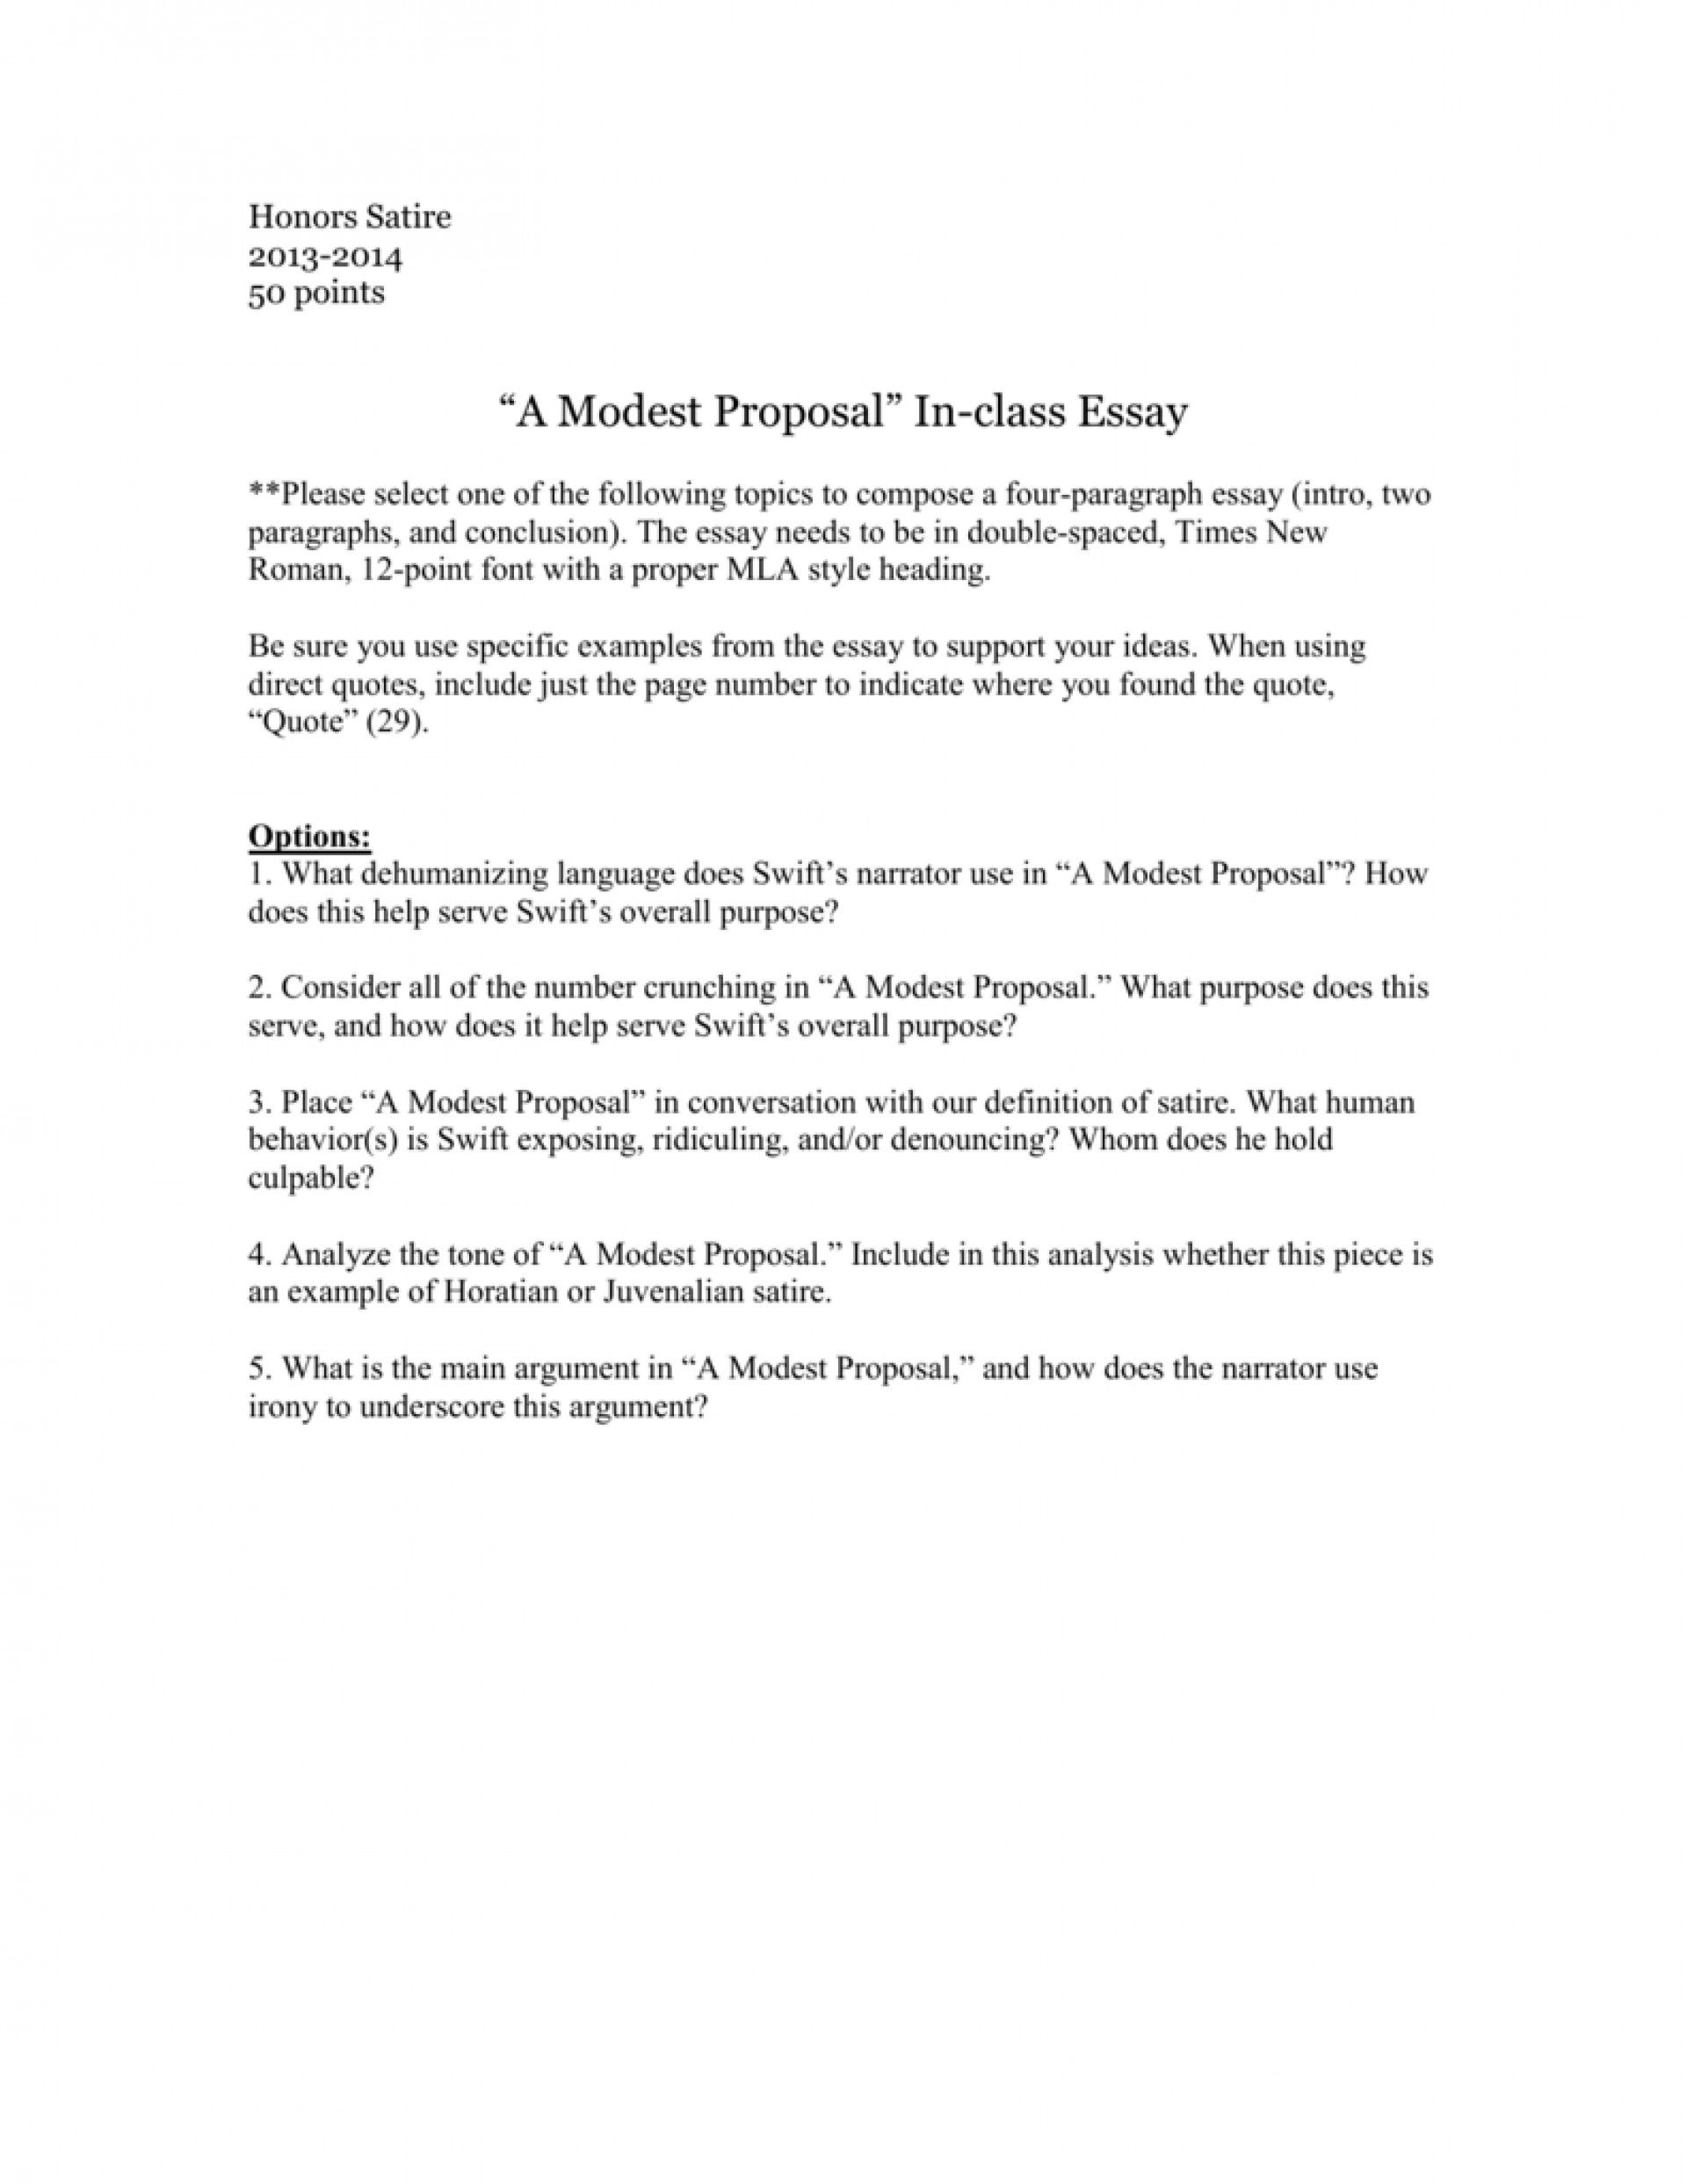 Find Another Essay On Essay Analysis of in Search of Modest Proposal